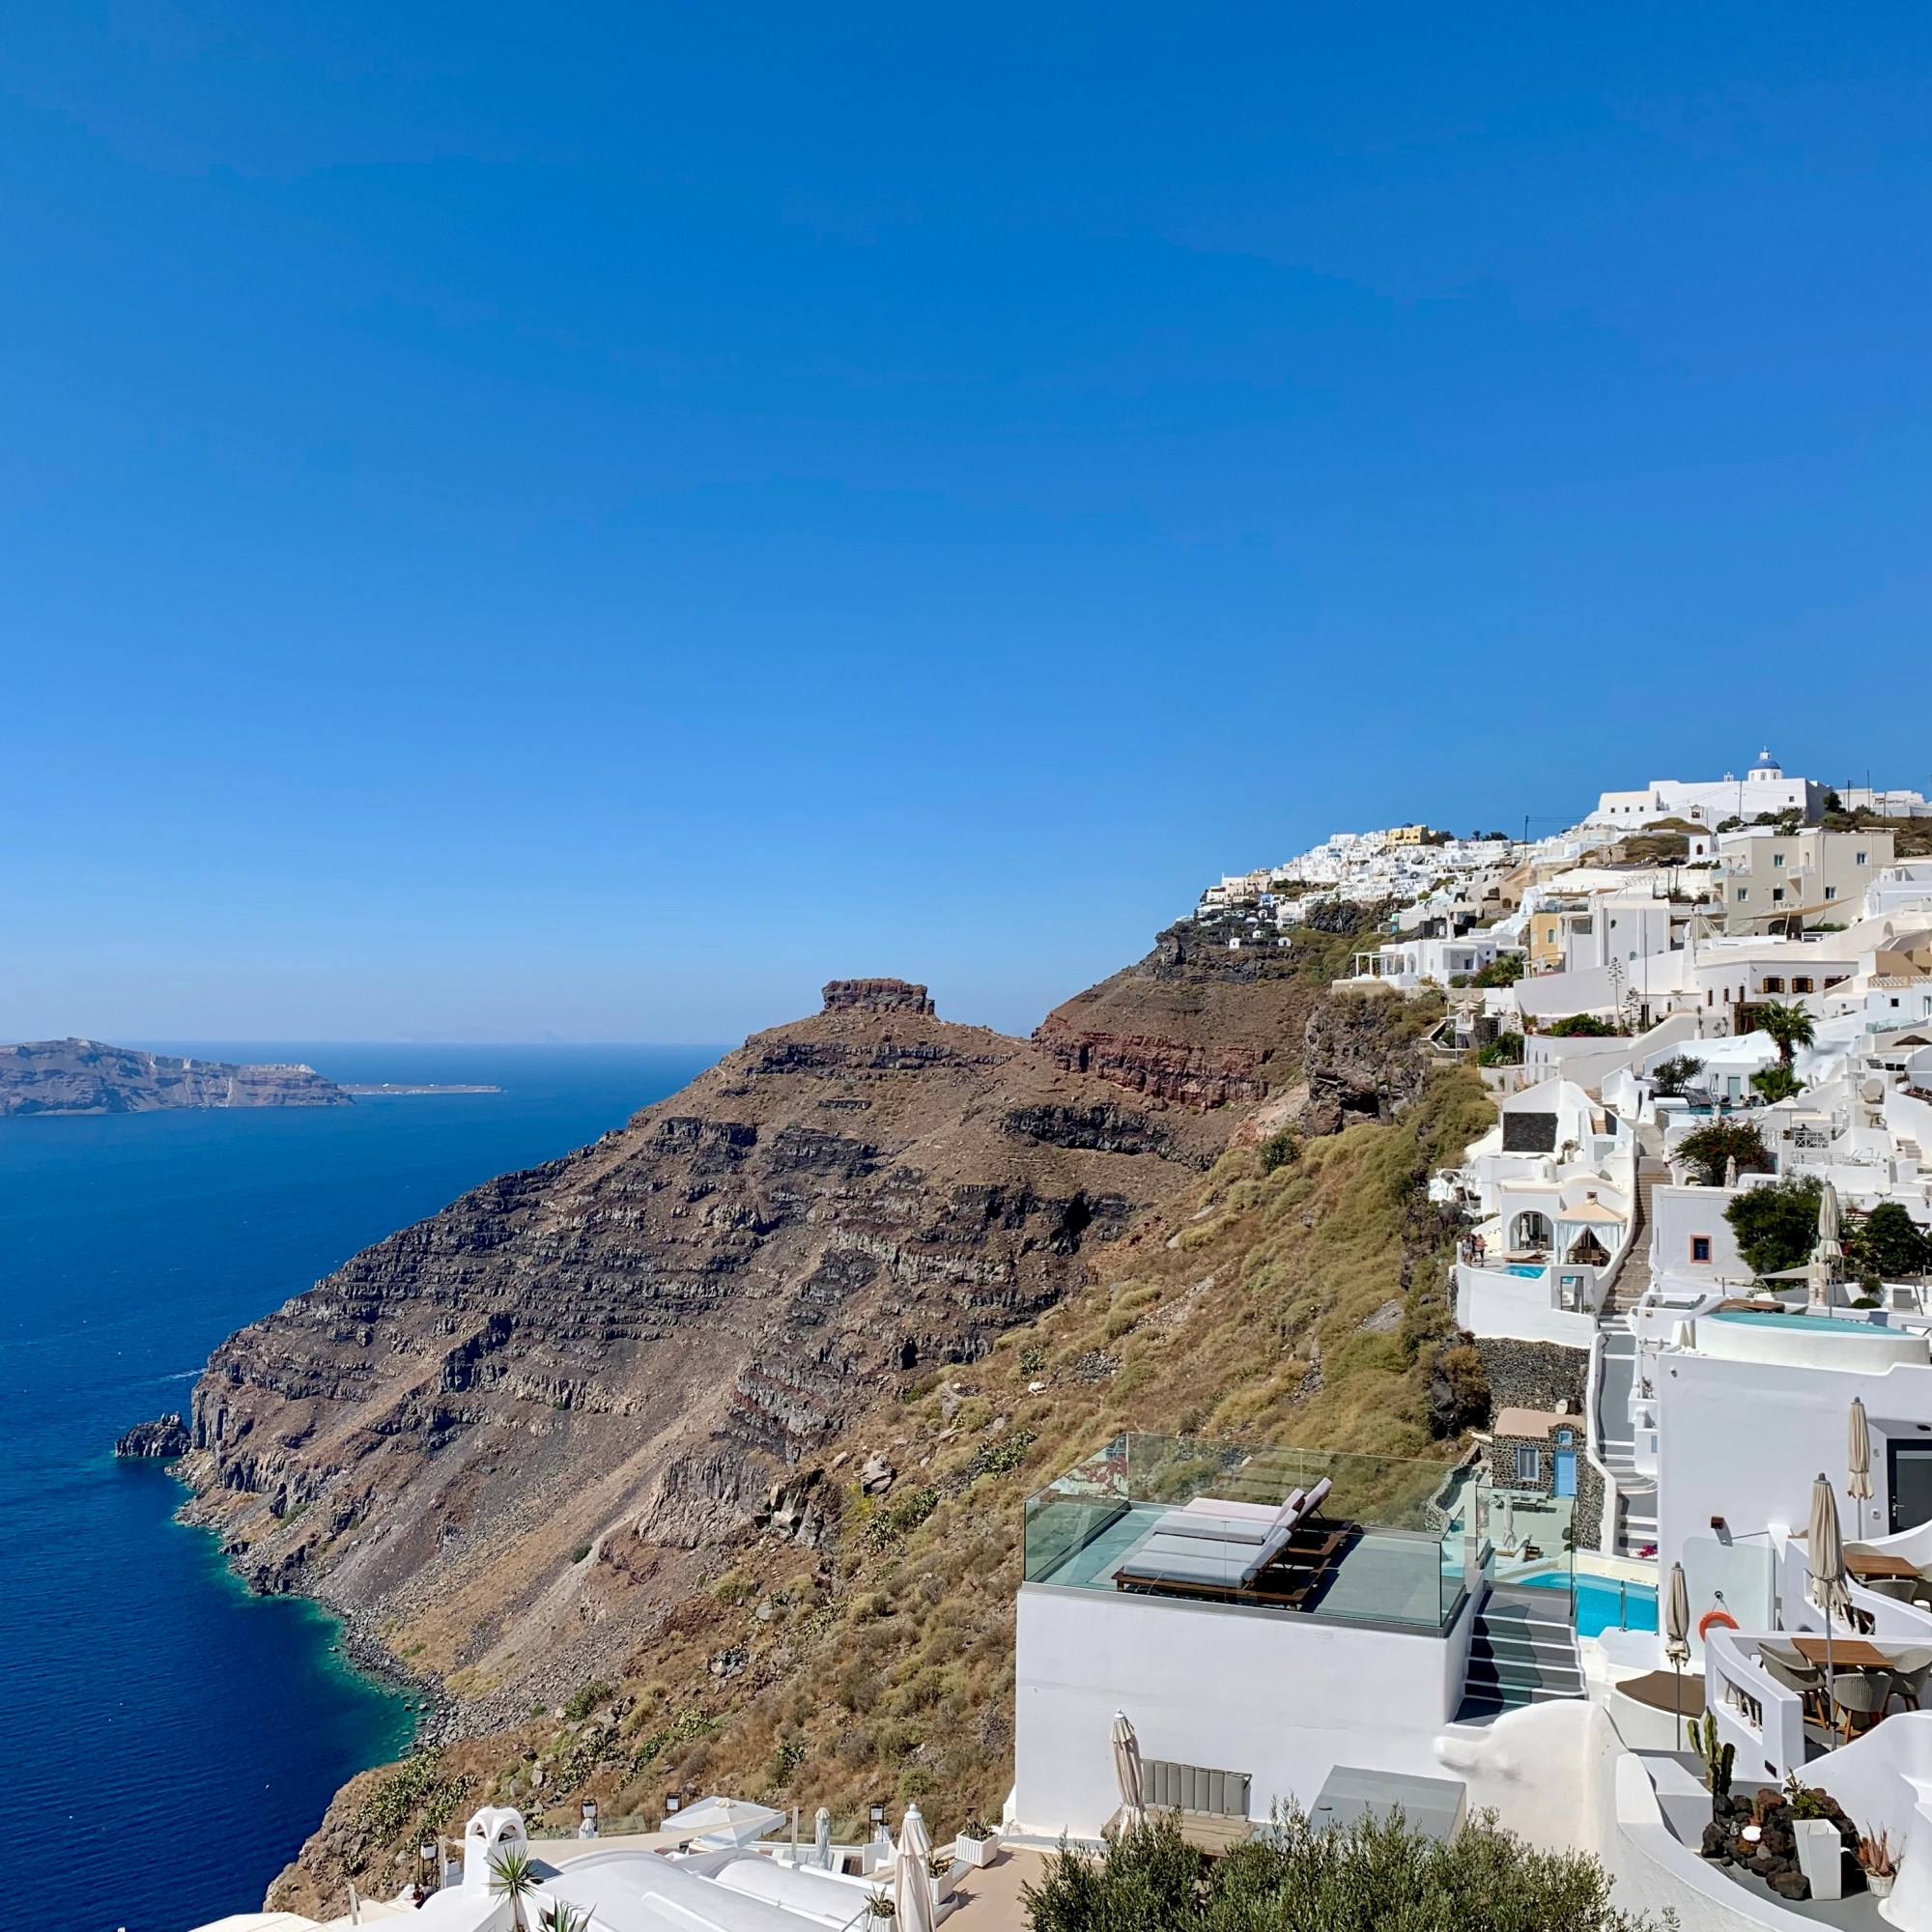 View from hike from Imerovigli to Fira